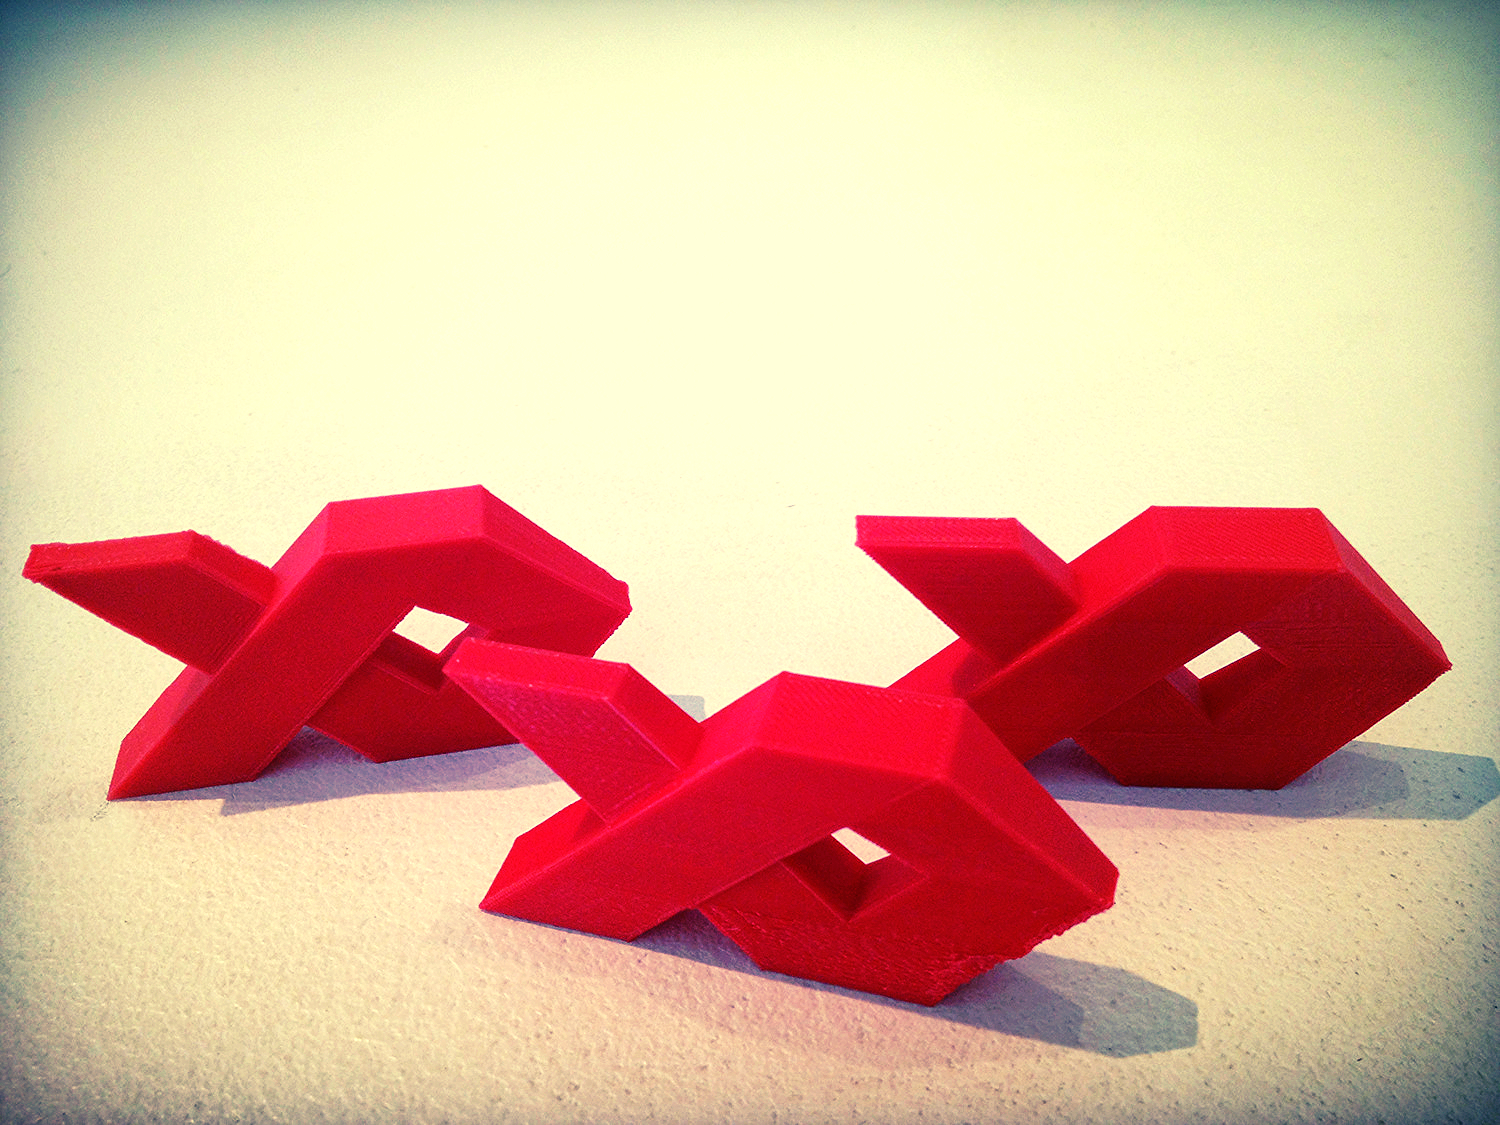 Mini Redfish logos were 3D printed by Makerbot's 3D printer on Newbury Street, Boston, MA.